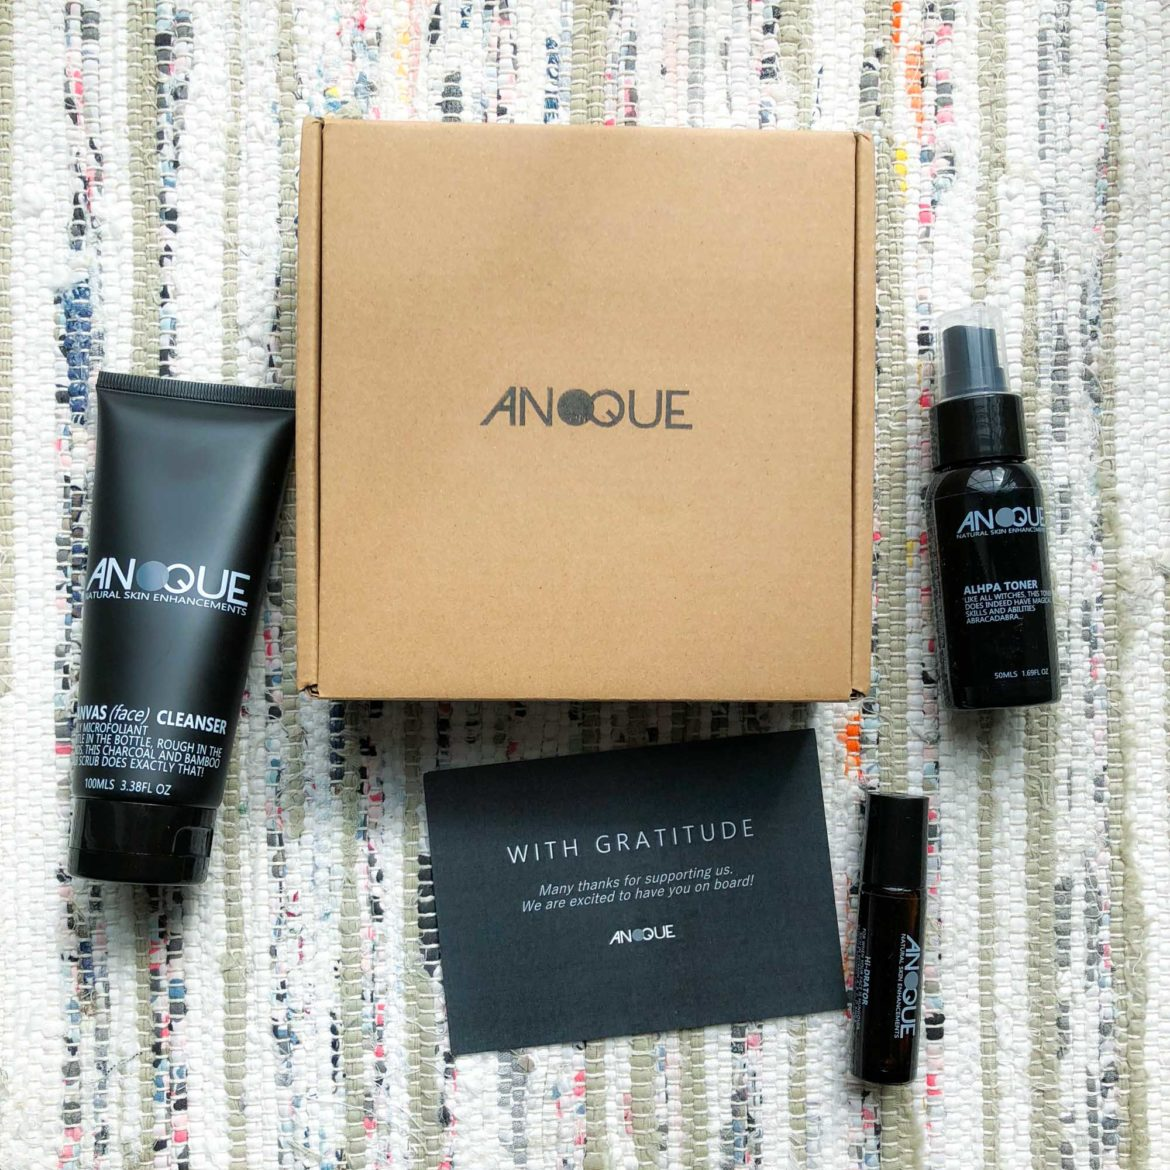 Anoque Men's Skincare Kit Review